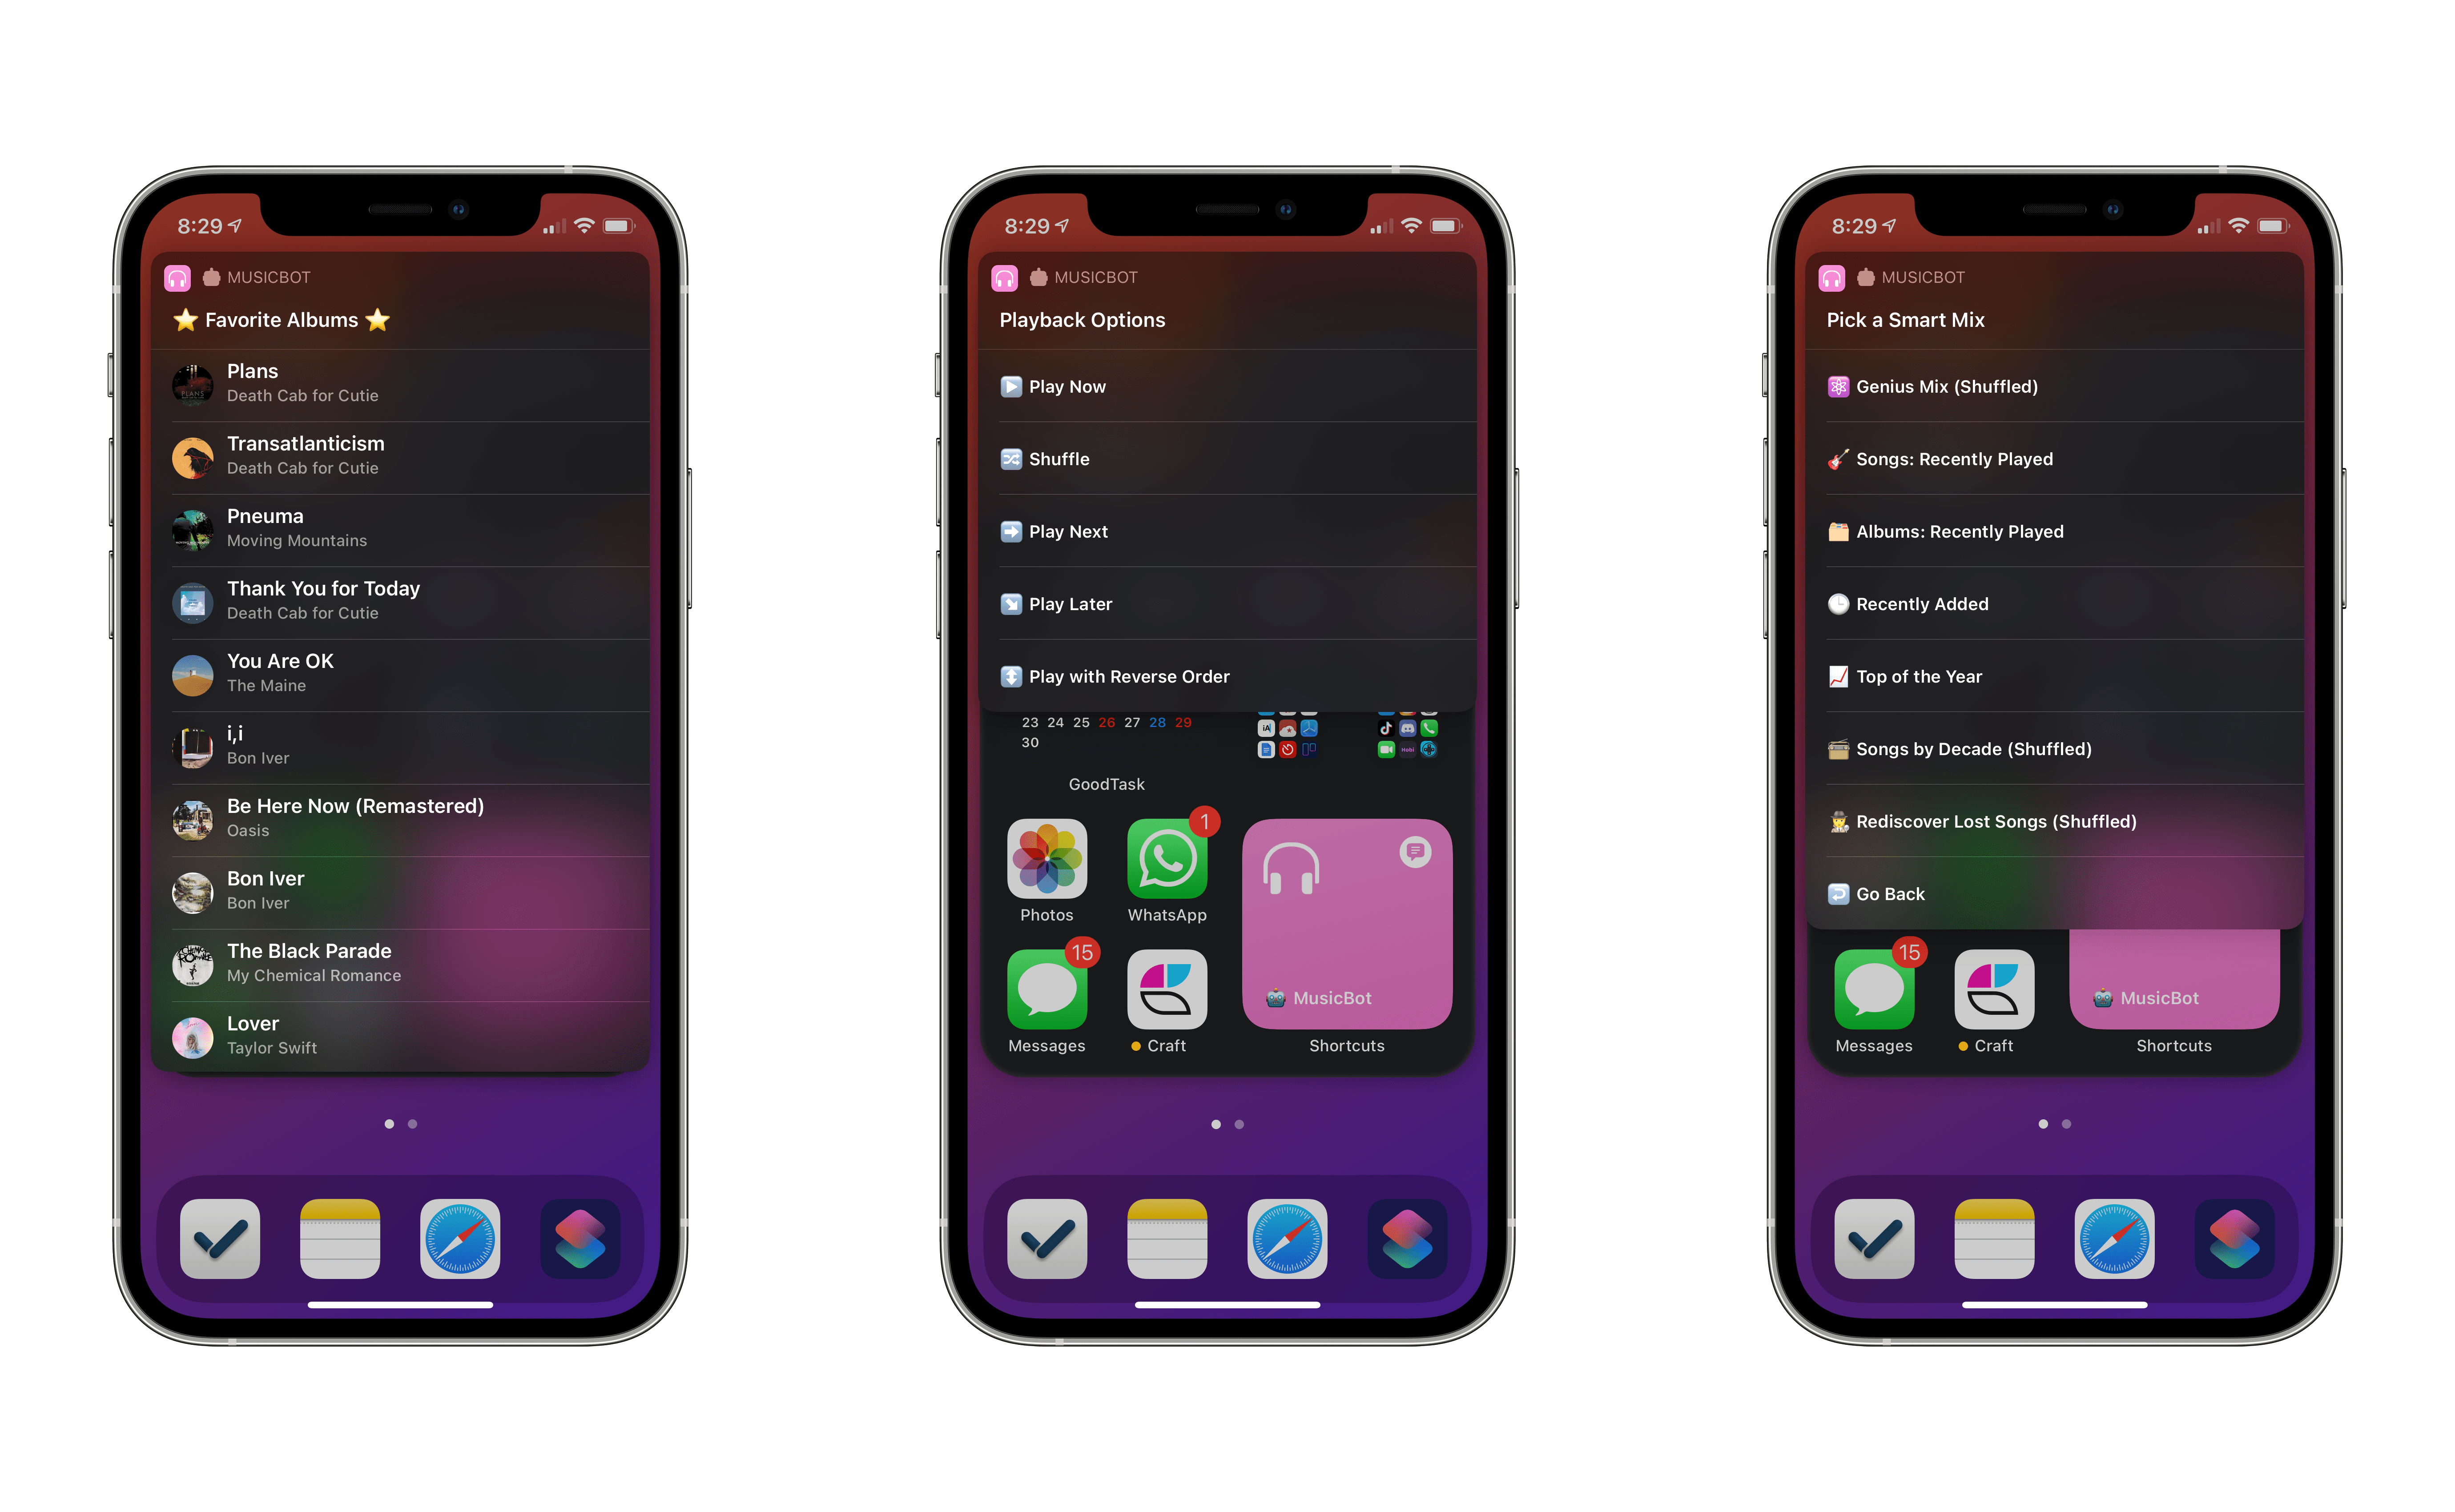 MusicBot actions running with compact UI on the iOS 14 Home Screen.